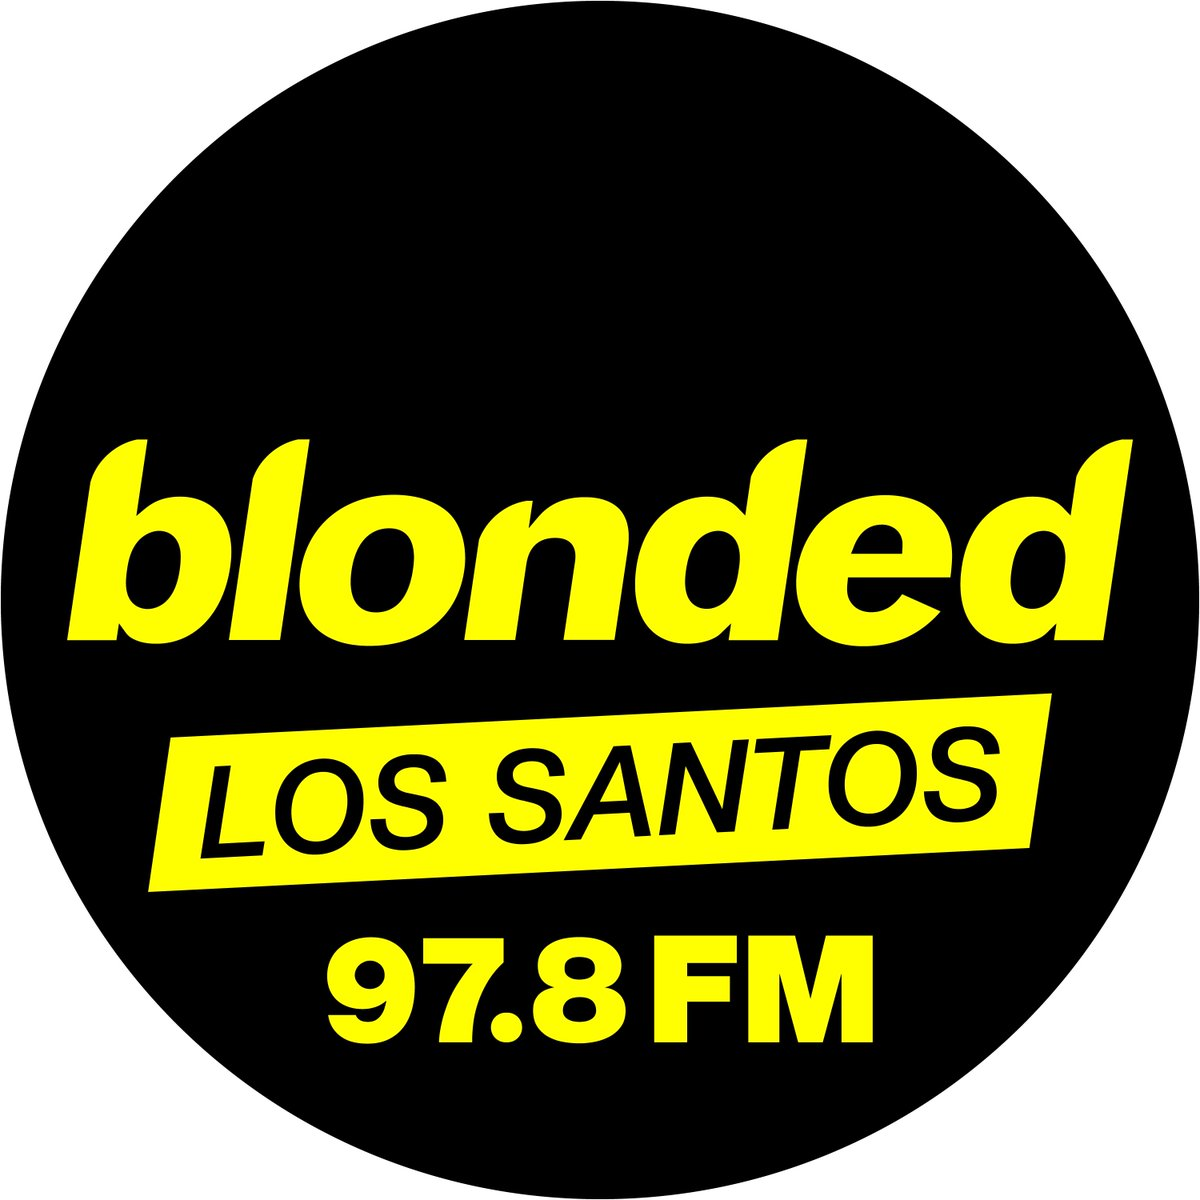 A taste of the new GTAV radio station: blonded Los Santos 97.8 https://t.co/0mgPRhODmY  Hosted by Frank Ocean + Vegyn, Roof Access and Fed  Savory soul, hip-hop and deep cuts Feat. SWV, Chief Keef, Todd Rundgren, Curtis Mayfield, Aphex Twin, JME, Jay-Z, Migos, Marvin Gaye & more.